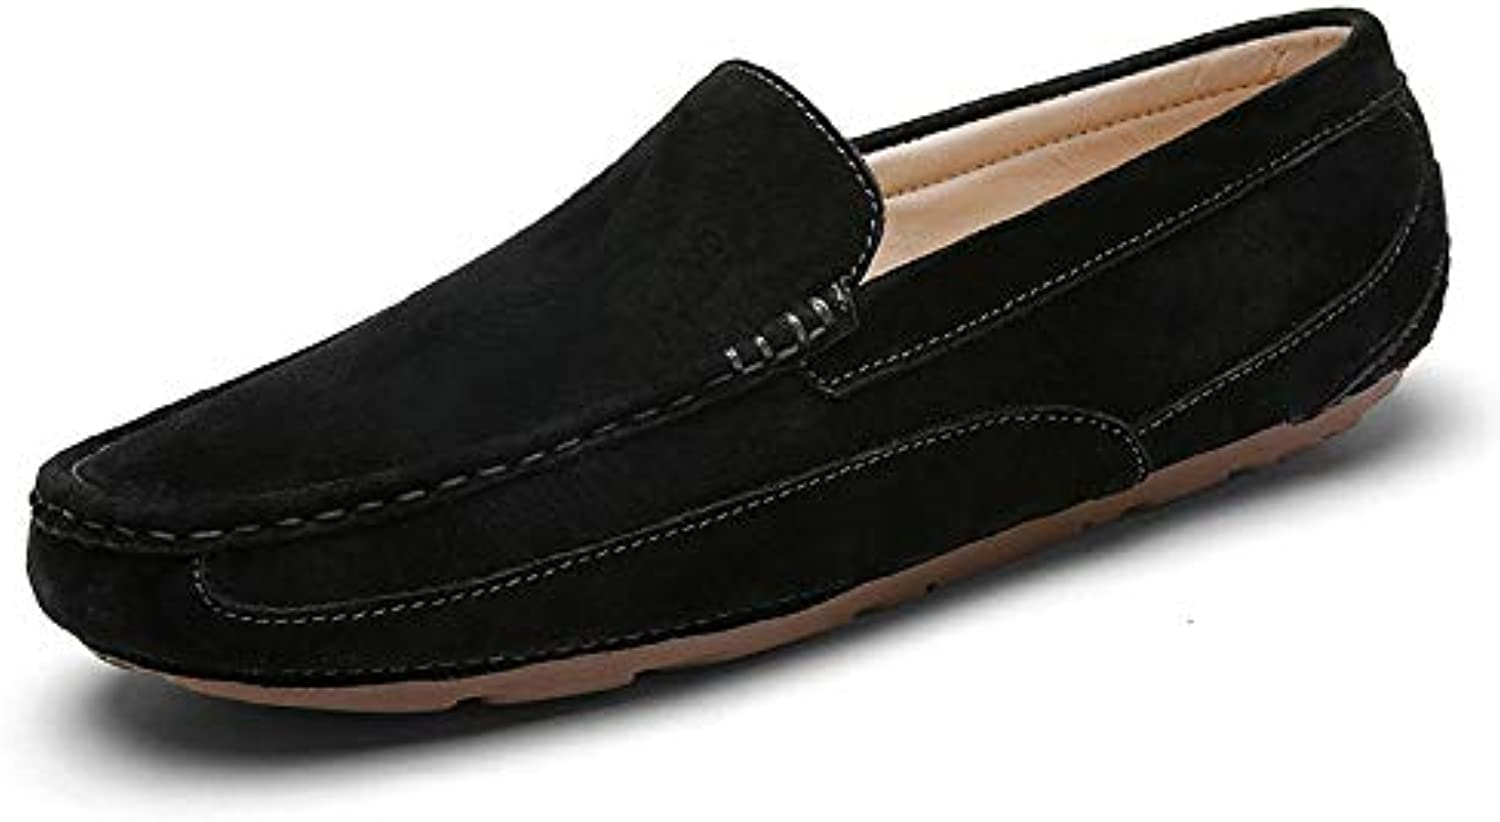 Easy Go Shopping Driving Loafer For Men Boat Moccasins Slip On Pigskin Leather Simple Low Top shoes Cricket shoes (color   Black, Size   8 UK)